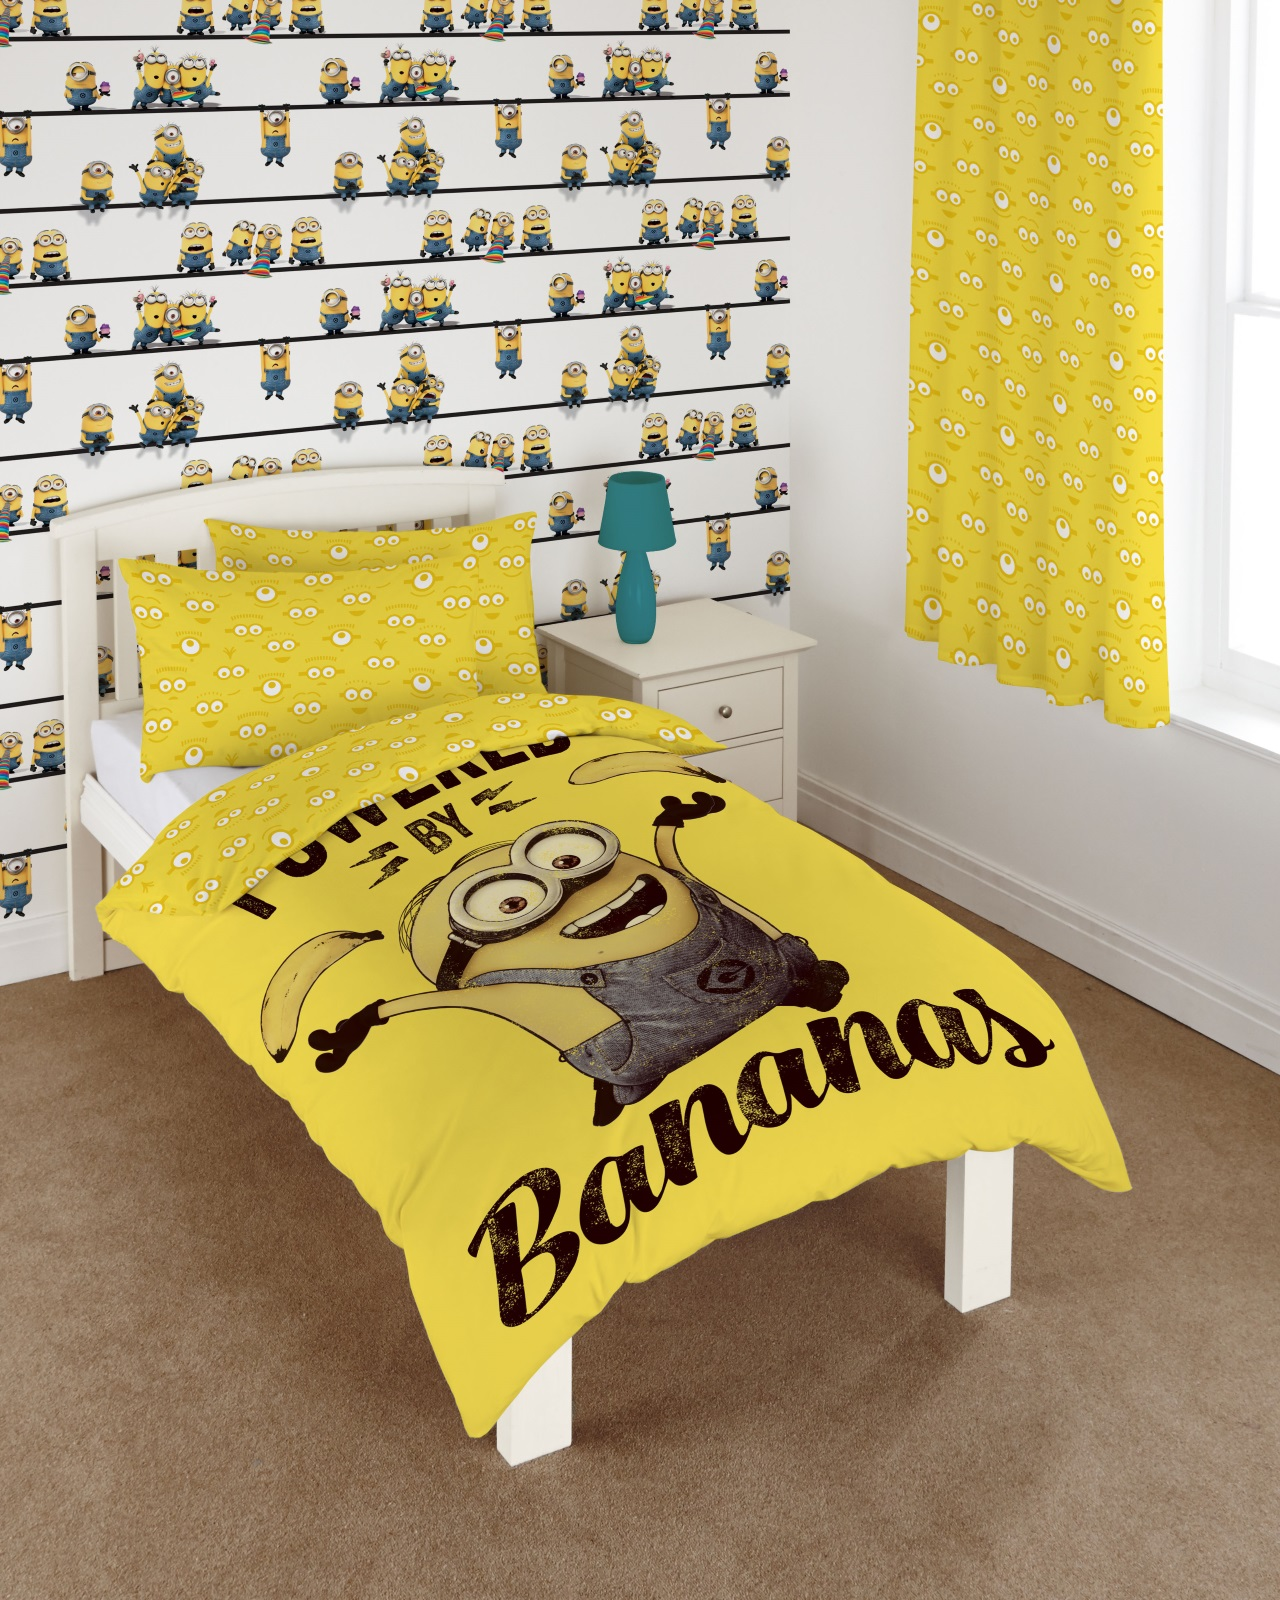 Despicable Me Wallpaper For Bedroom | Latest News On Design ...